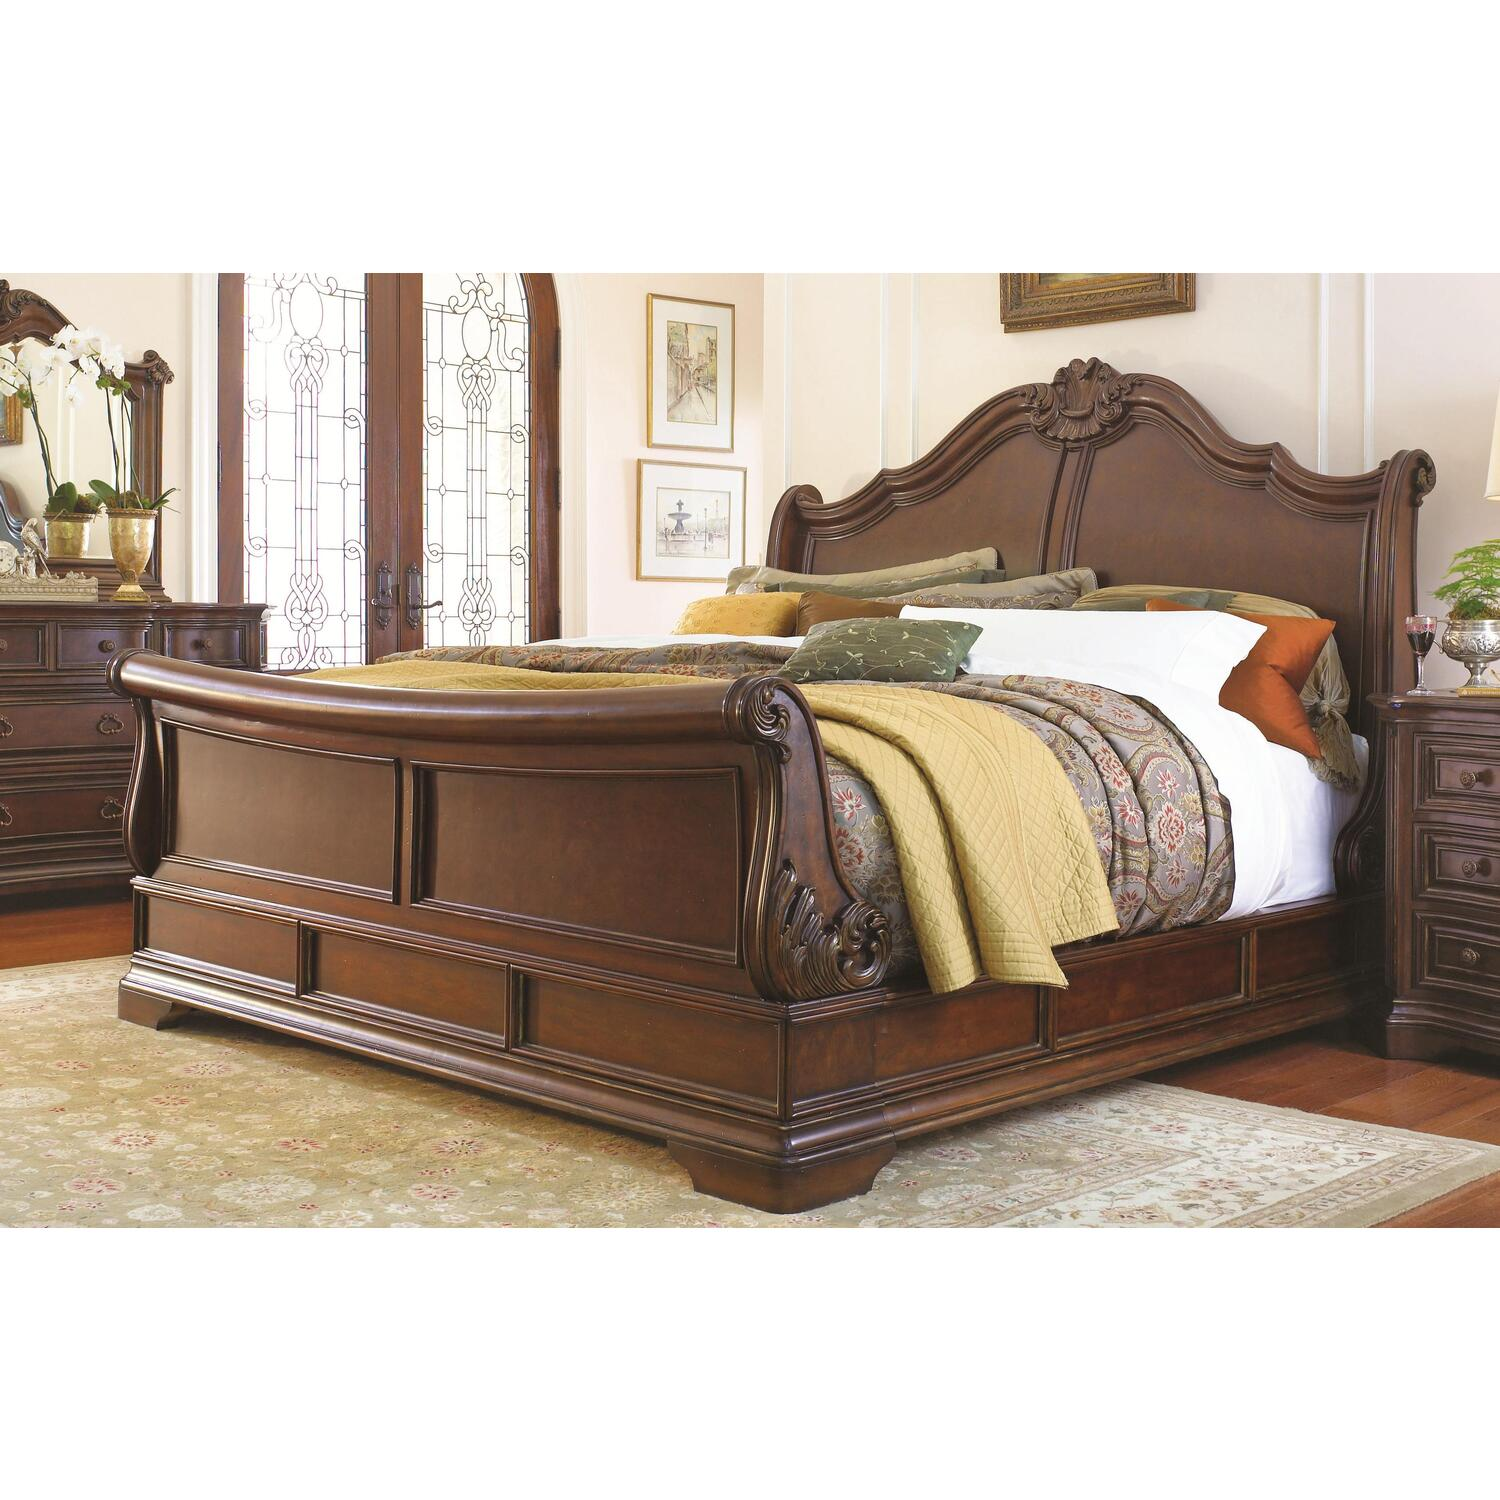 Universal furniture casa verona california king sleigh bed - King size sleigh bed bedroom set ...